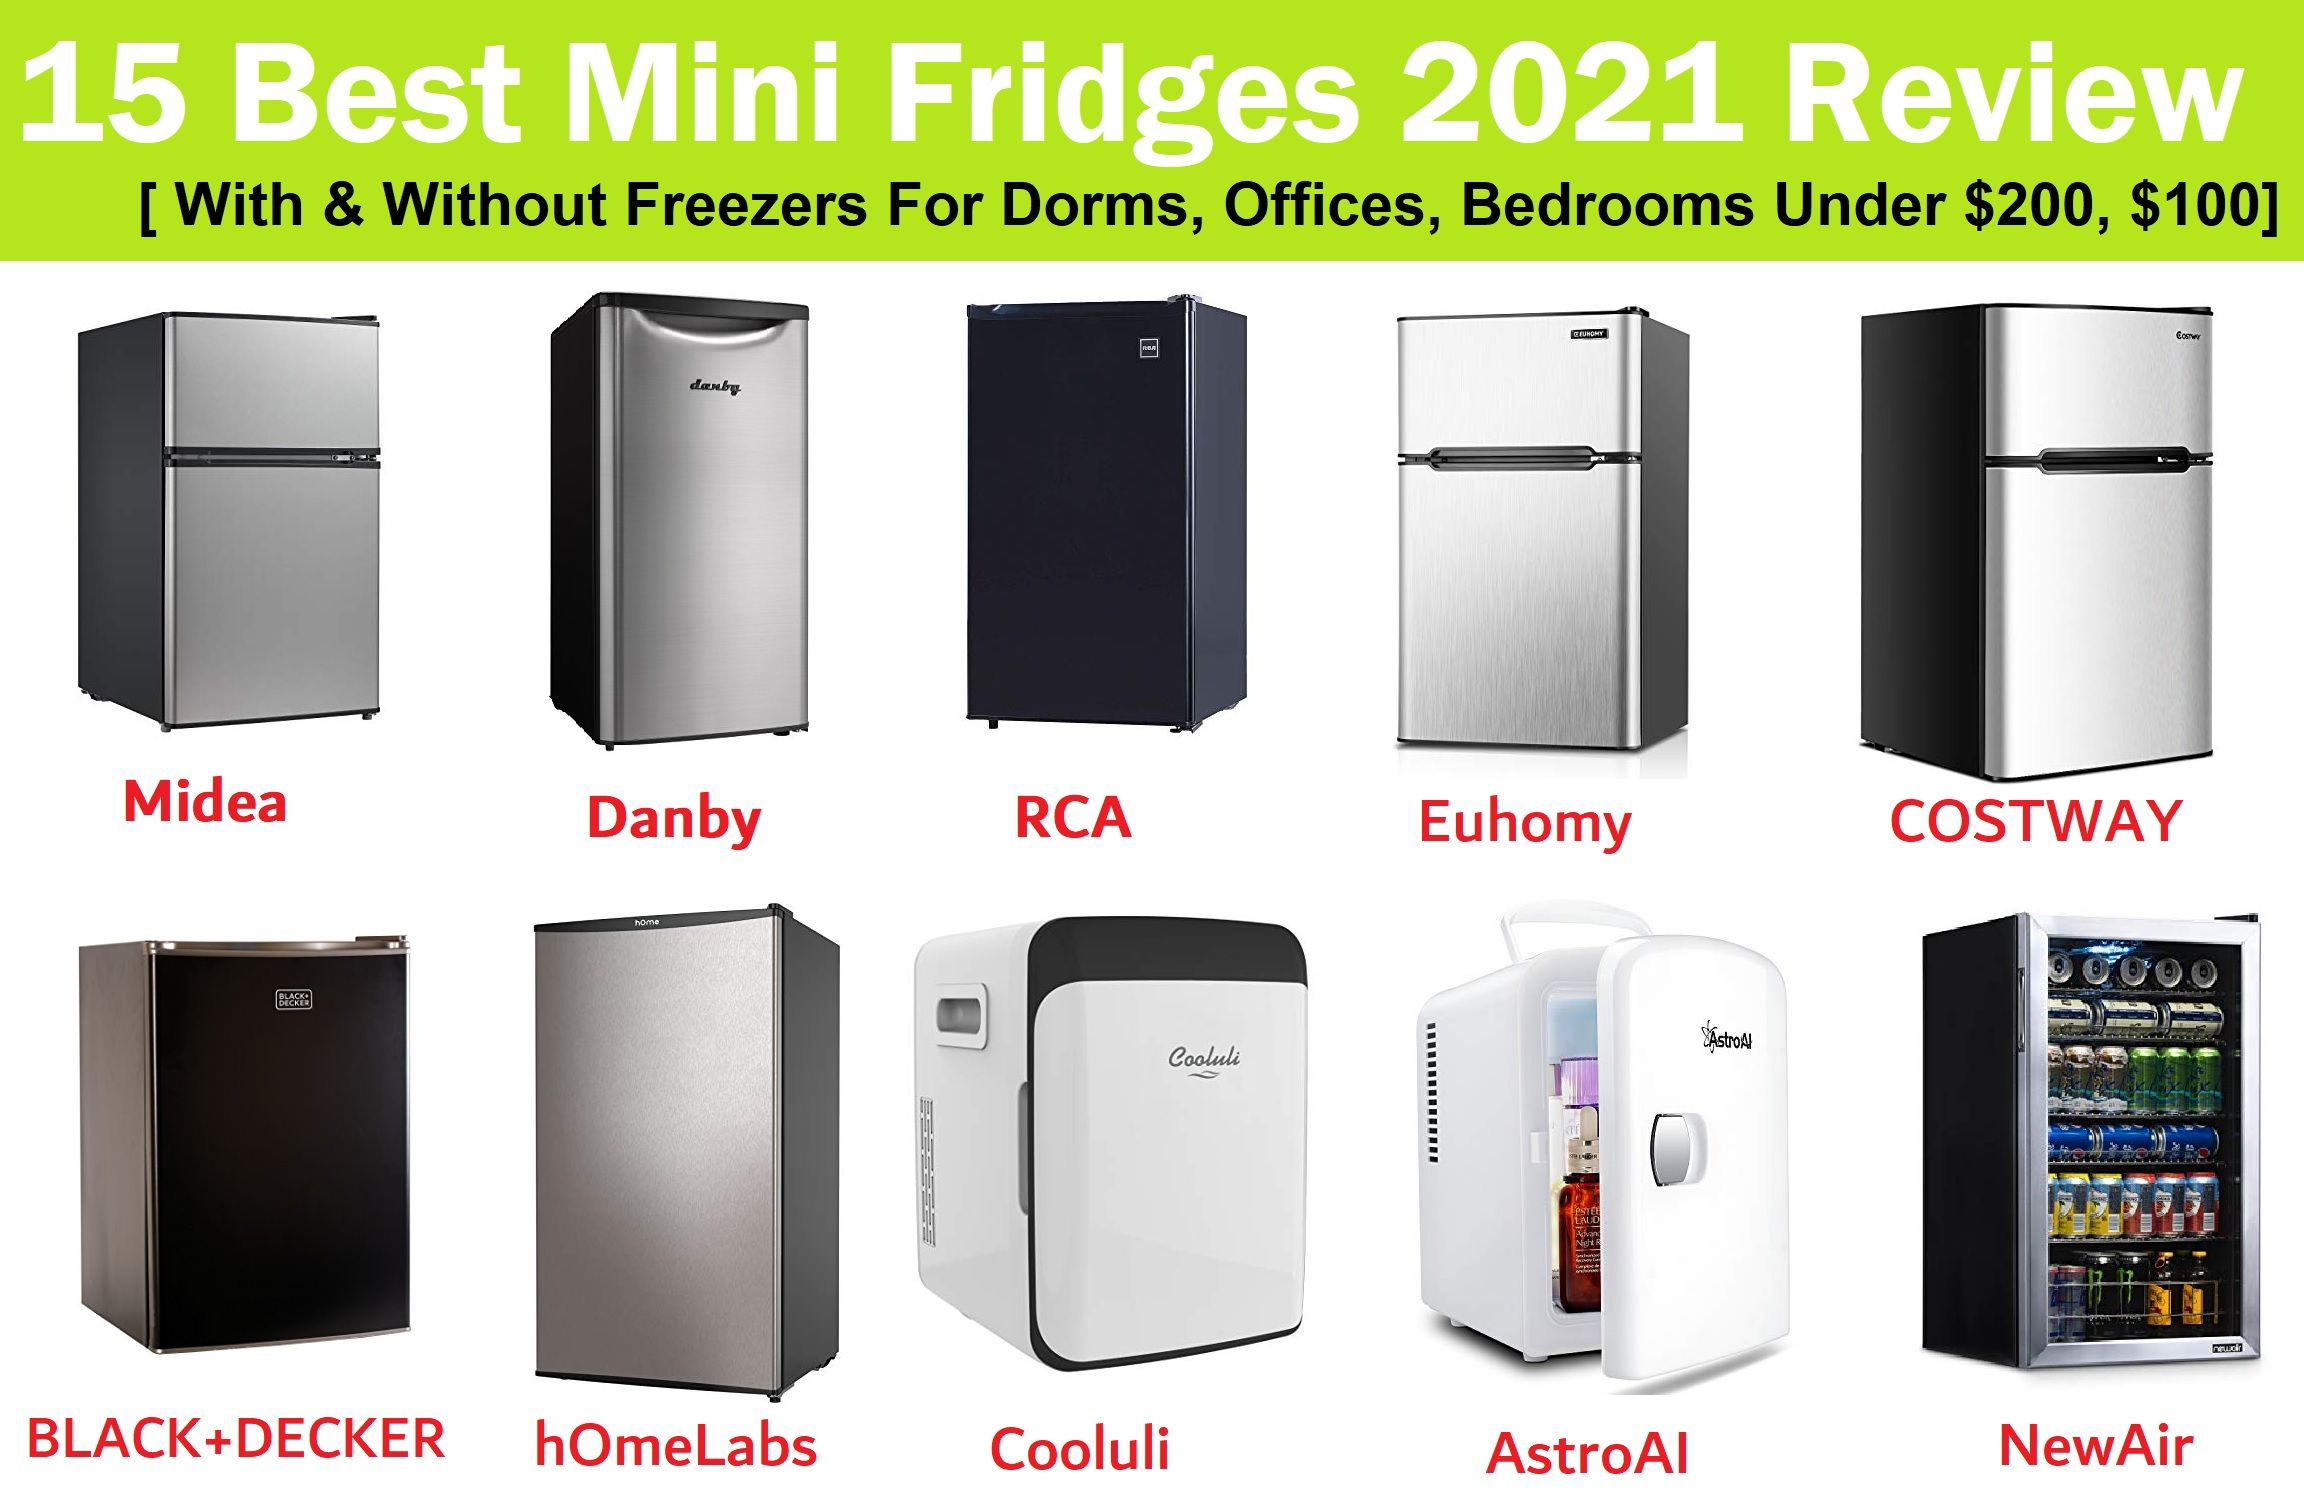 15 Best Mini Fridge 2021 Review [ With & Without Freezers For Dorms, Offices, Bedrooms List Under $200, $100] Compared Midea vs RCA vs Danby vs Cooluli vs Euhomy vs BLACK+DECKER vs hOmeLabs vs AstroAI vs COSTWAY vs Guay